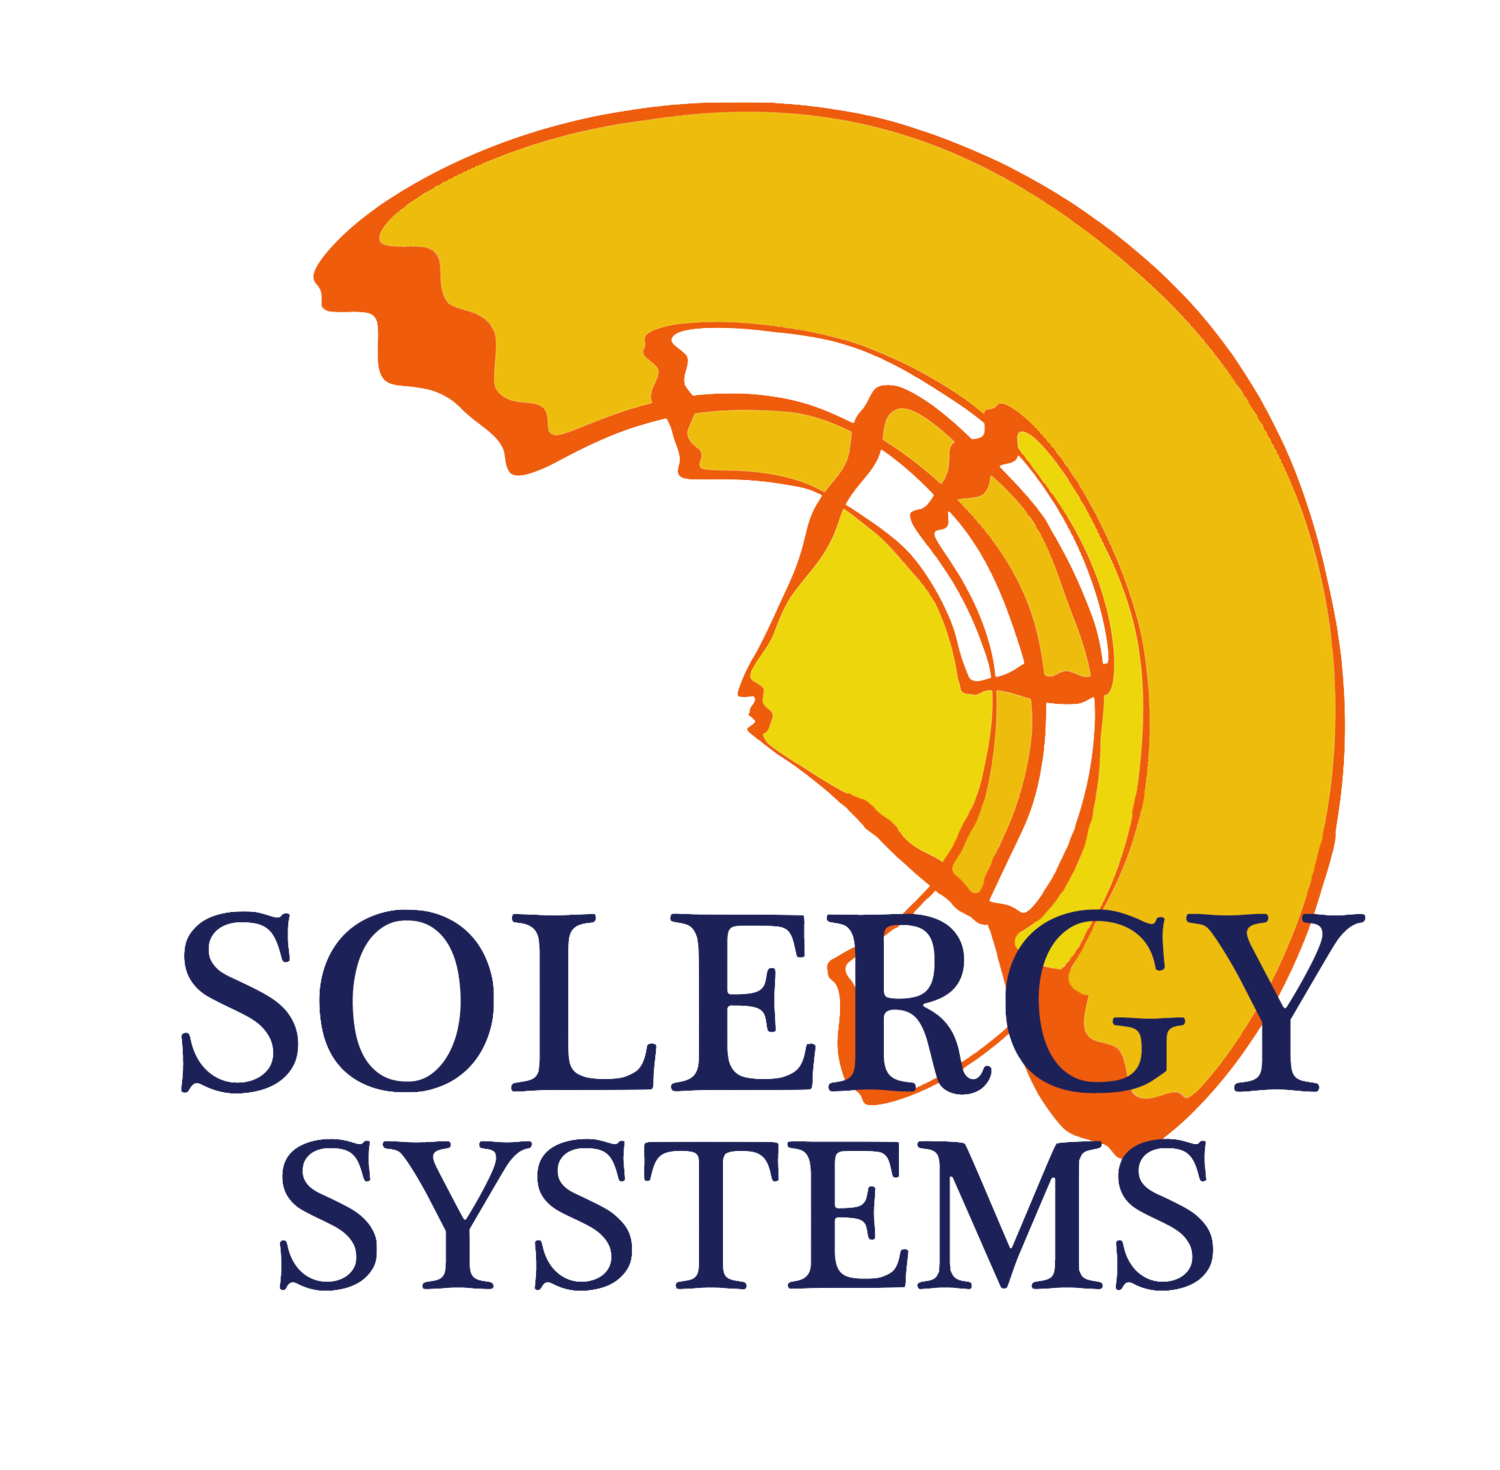 Solergy Systems | Bringing Power Where Needed